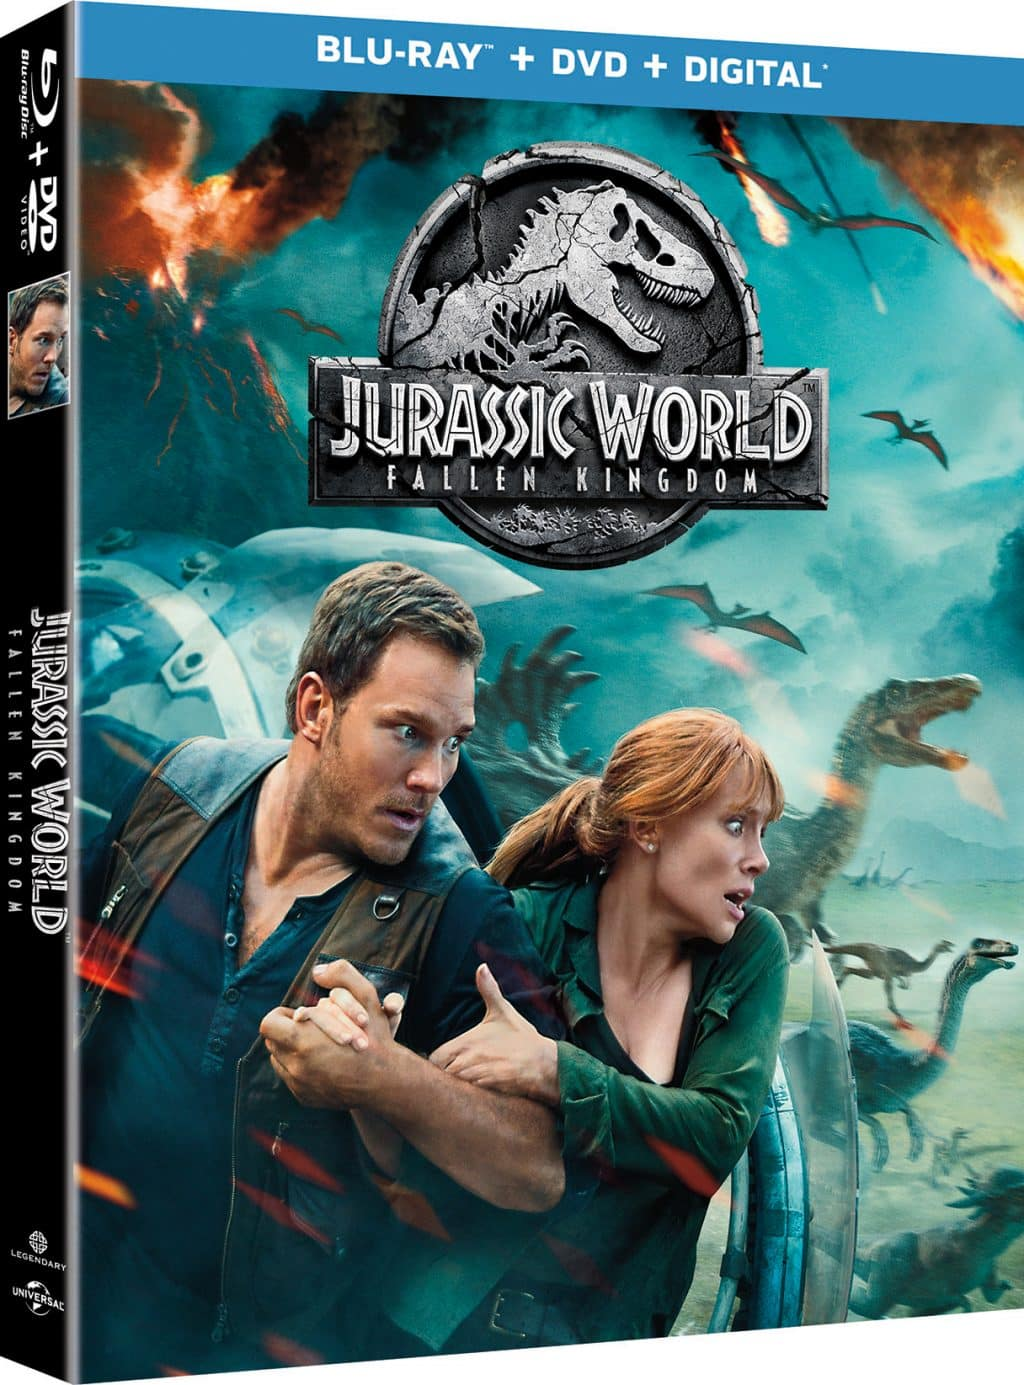 Jurassic World: FallenKingdom Arrives on Digital September 4th and Blu-ray September 18th